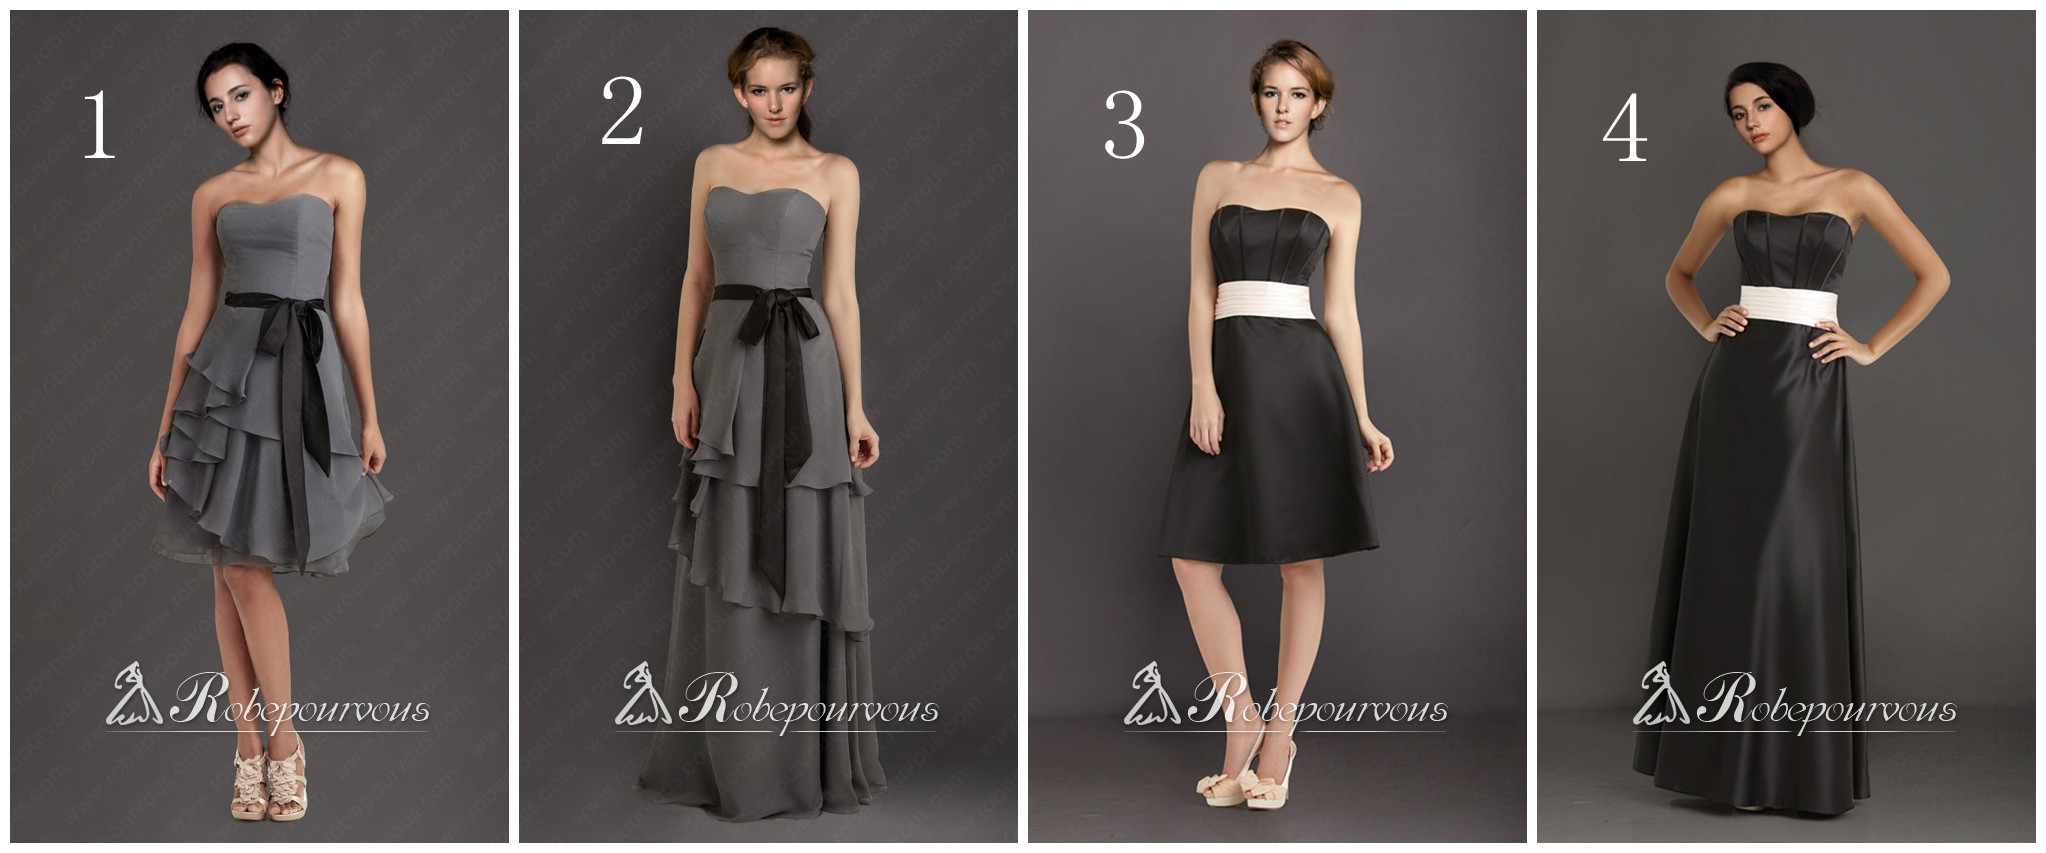 Robe bustier pas cher soiree